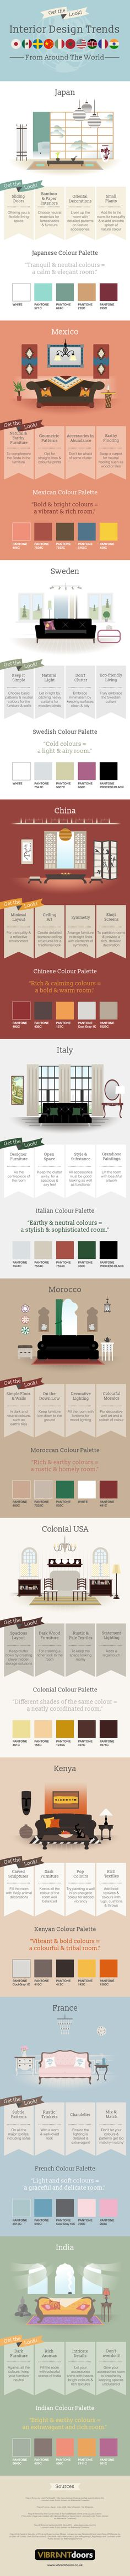 Interior Design | Tipsögraphic | More amazing tips at http://www.tipsographic.com/